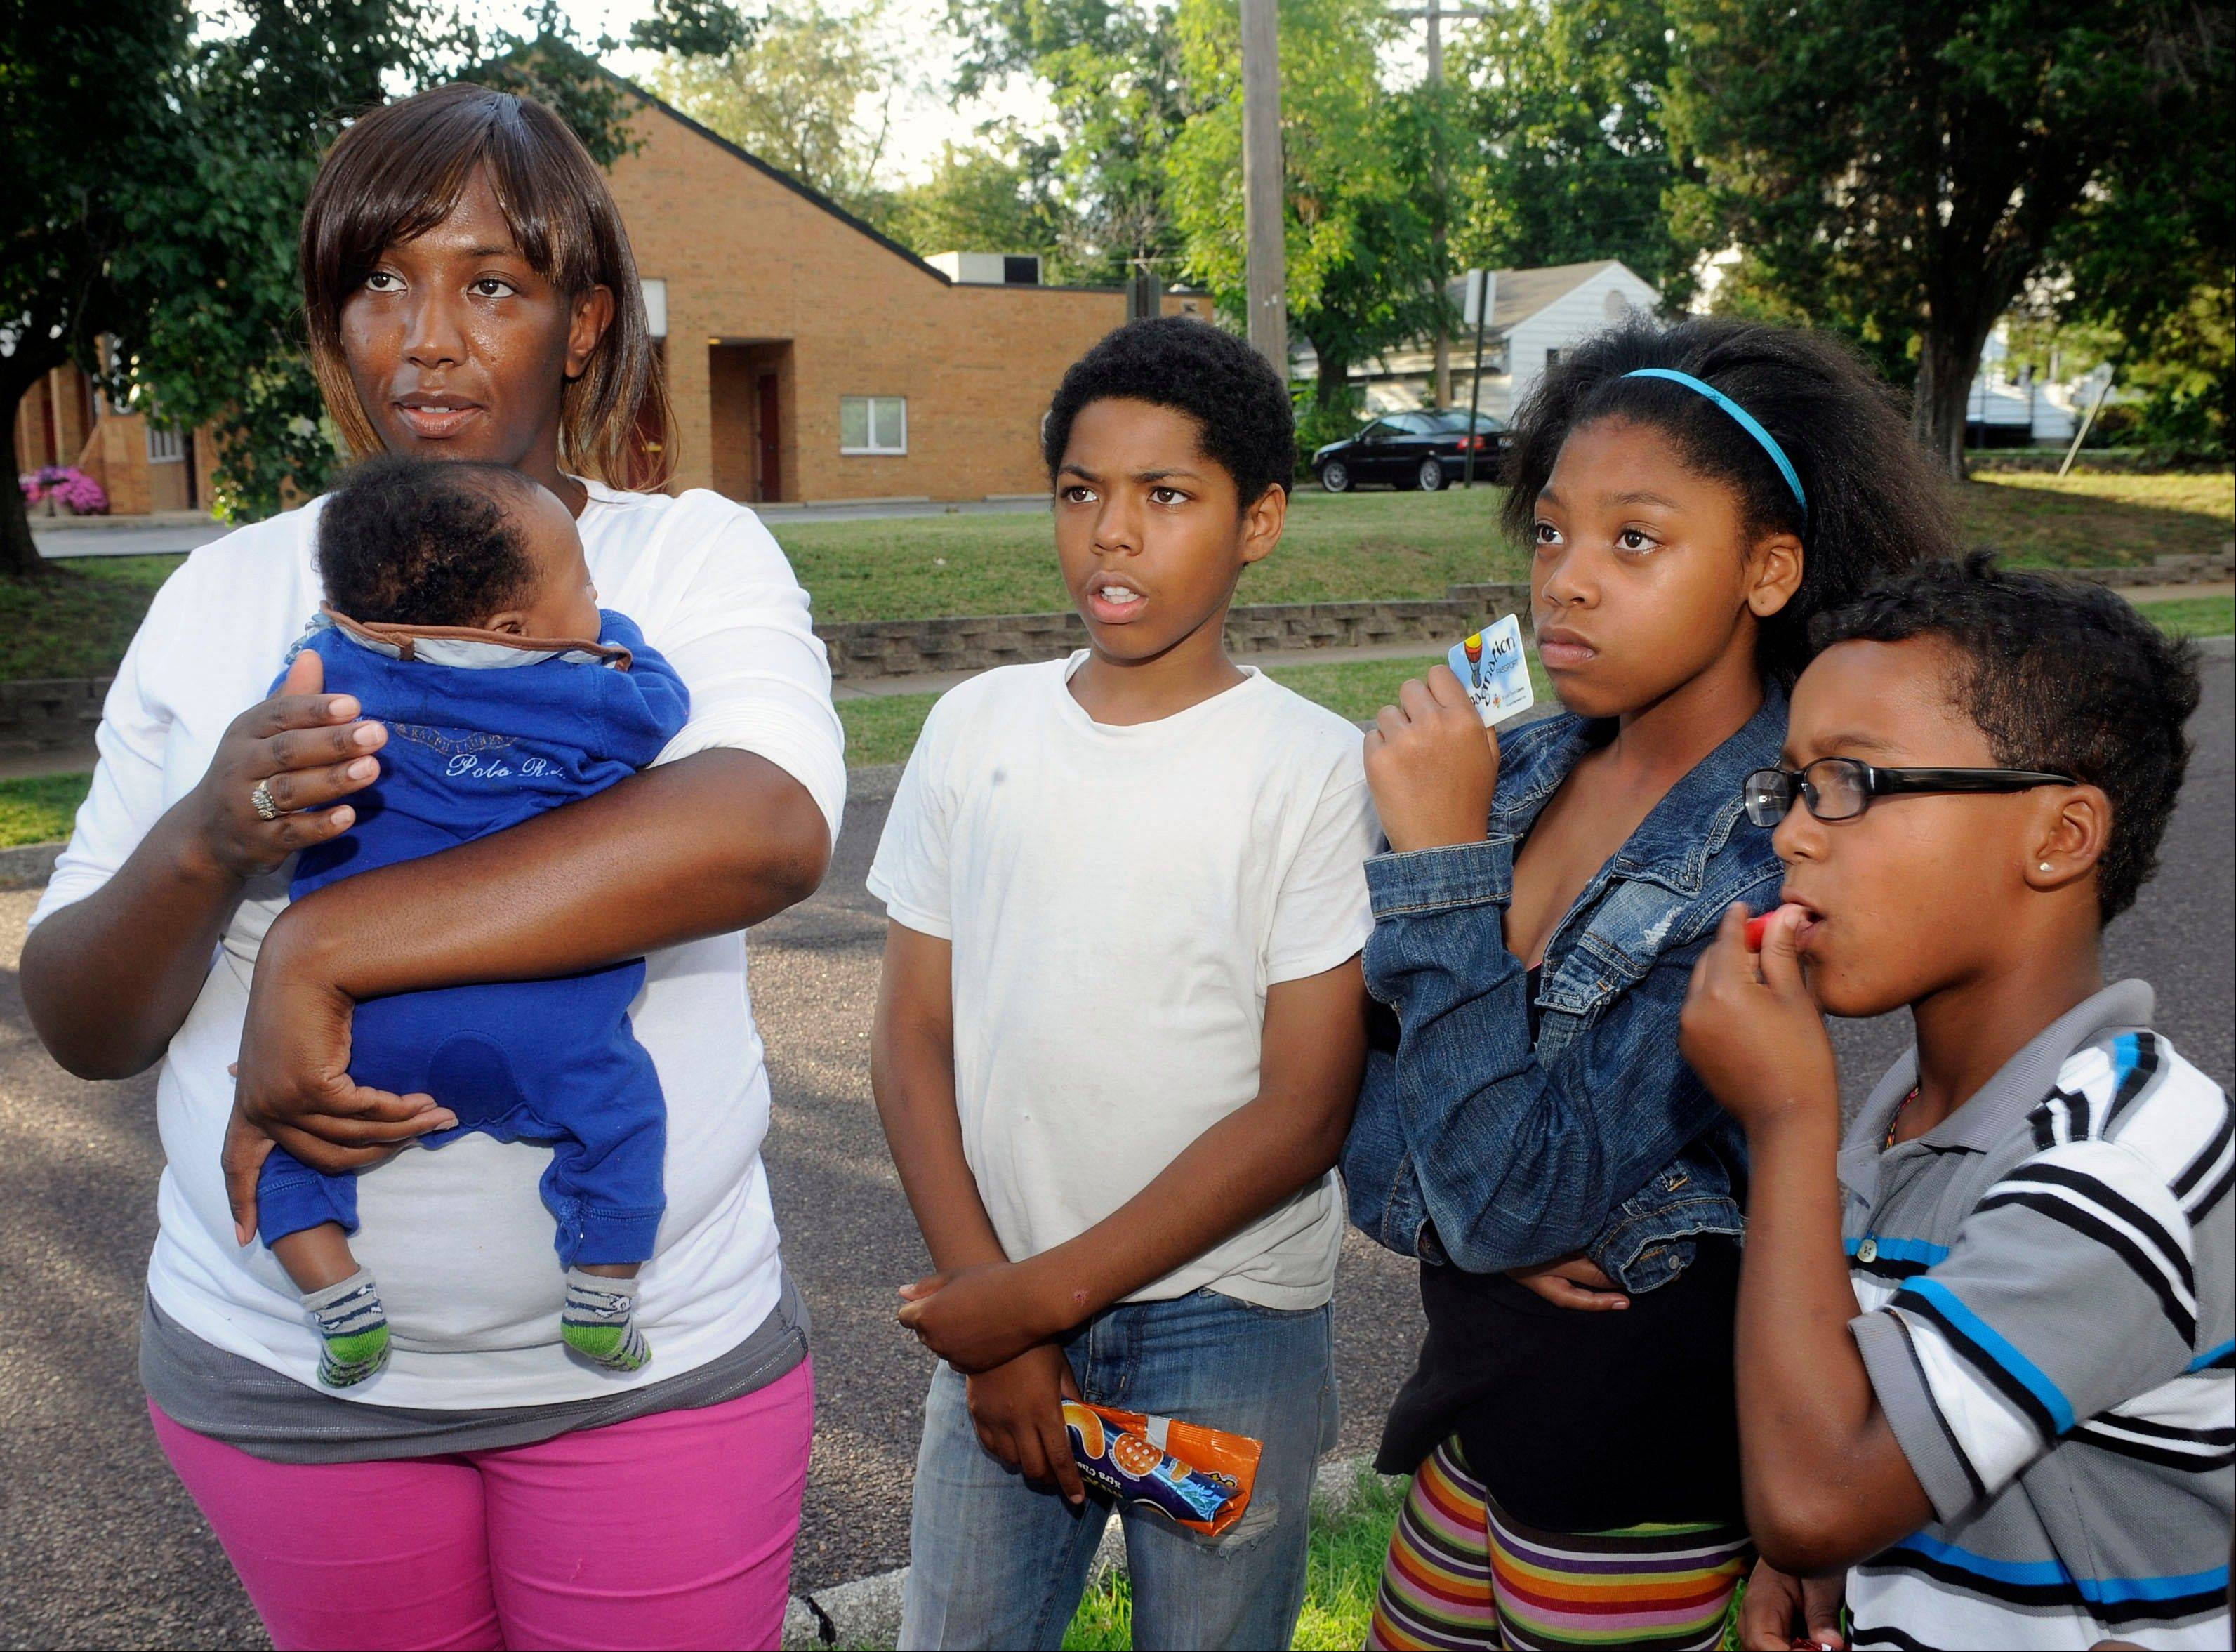 Christina Holmes, left, 29, of the Normandy Schood District in St. Louis County holds her infant Kerian, one month old, as she discusses the school transfer program in Normandy, Mo., standing next to three of her children, left to right, Daevion, 12, Amelian, 10, and Andrew, 8, Wednesday, Aug. 7, 2013. Christina's 14-year-old son will attend school in the Francis Howell School District as part of the transfer program.